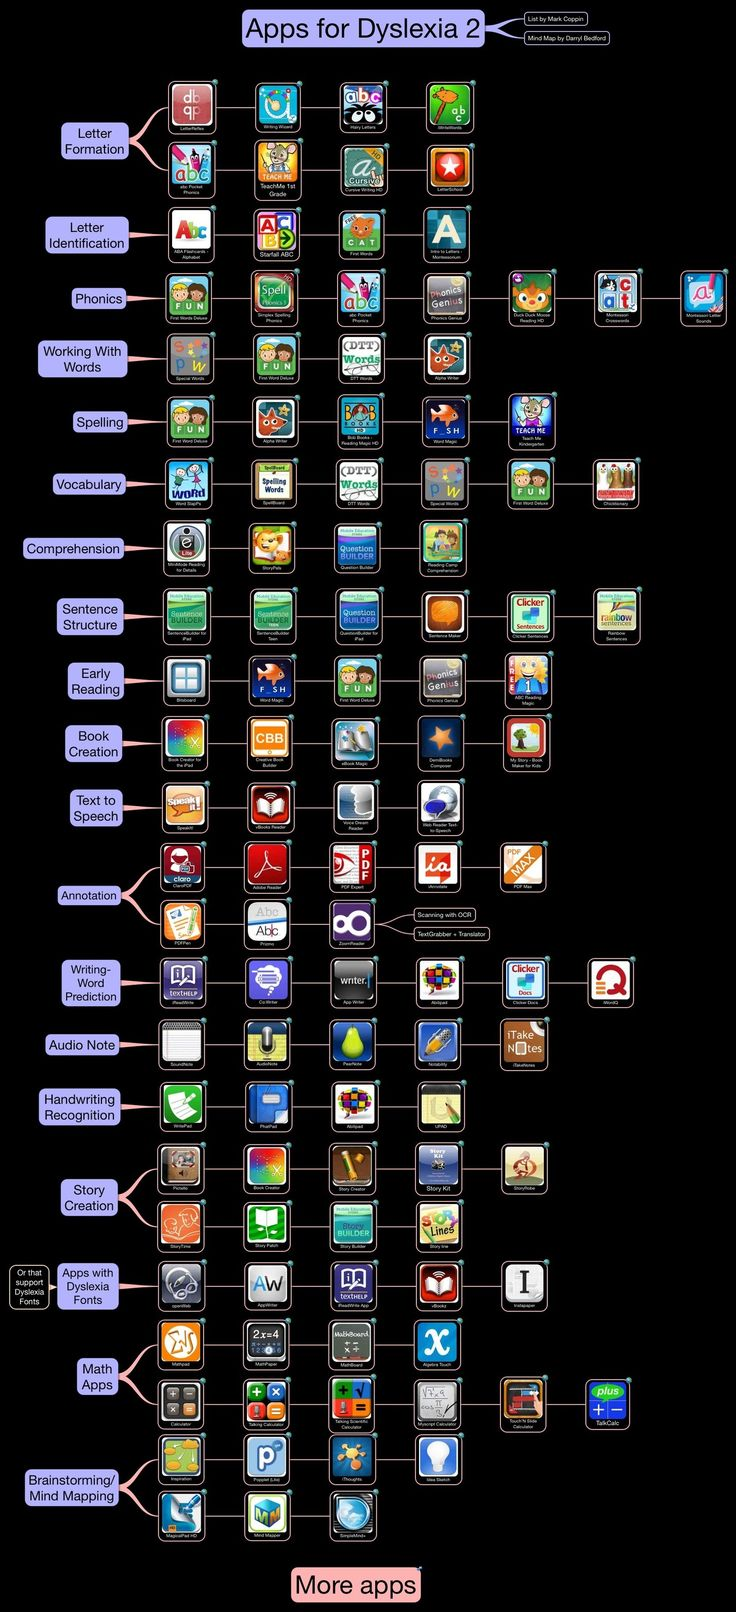 Apps for Dyslexia